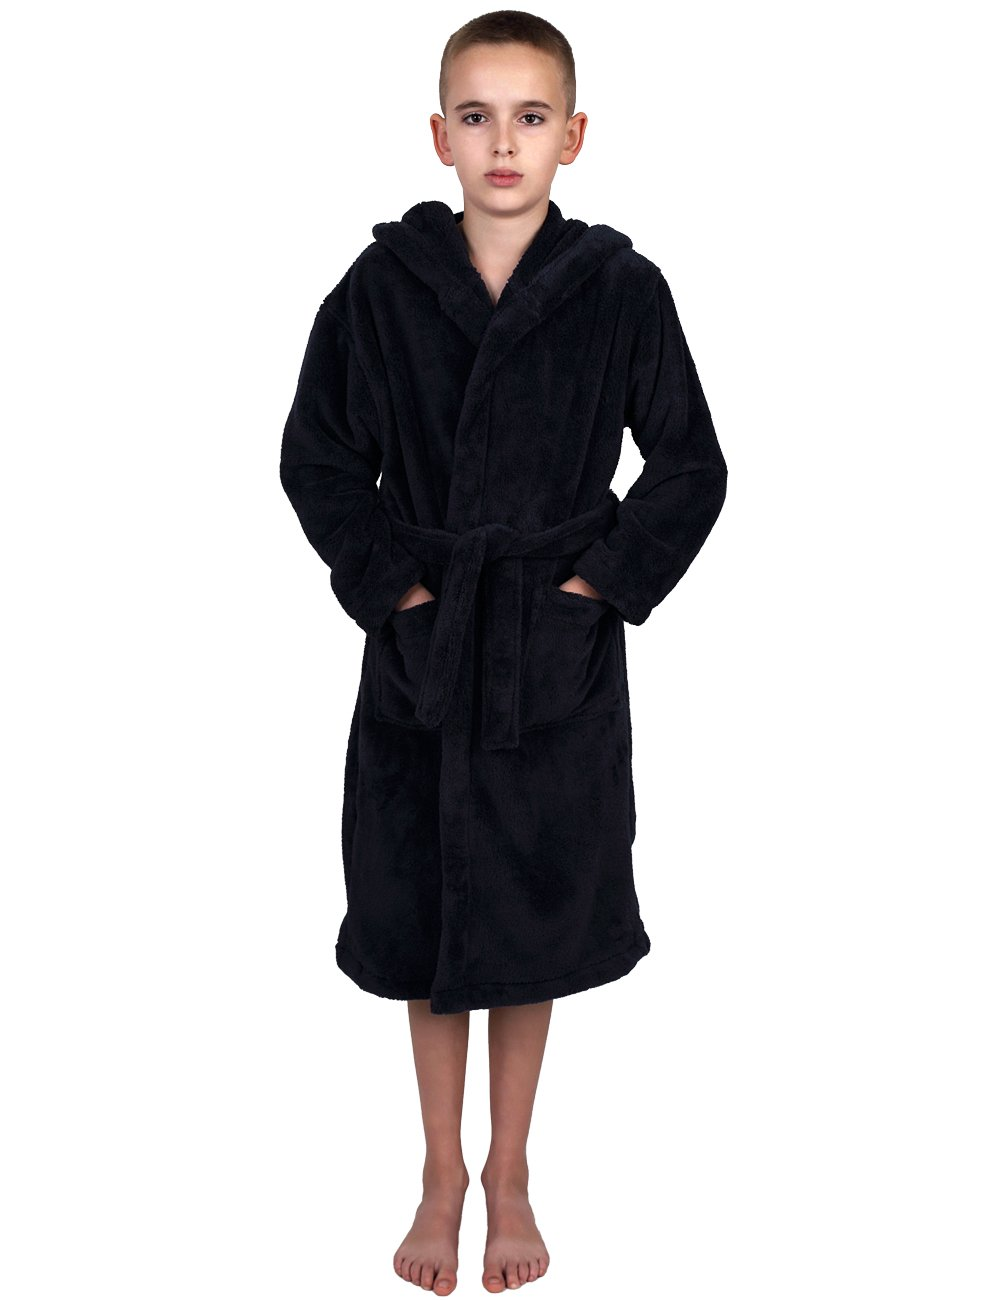 TowelSelections Big Boys' Robe, Kids Plush Hooded Fleece Bathrobe Size 14 Navy